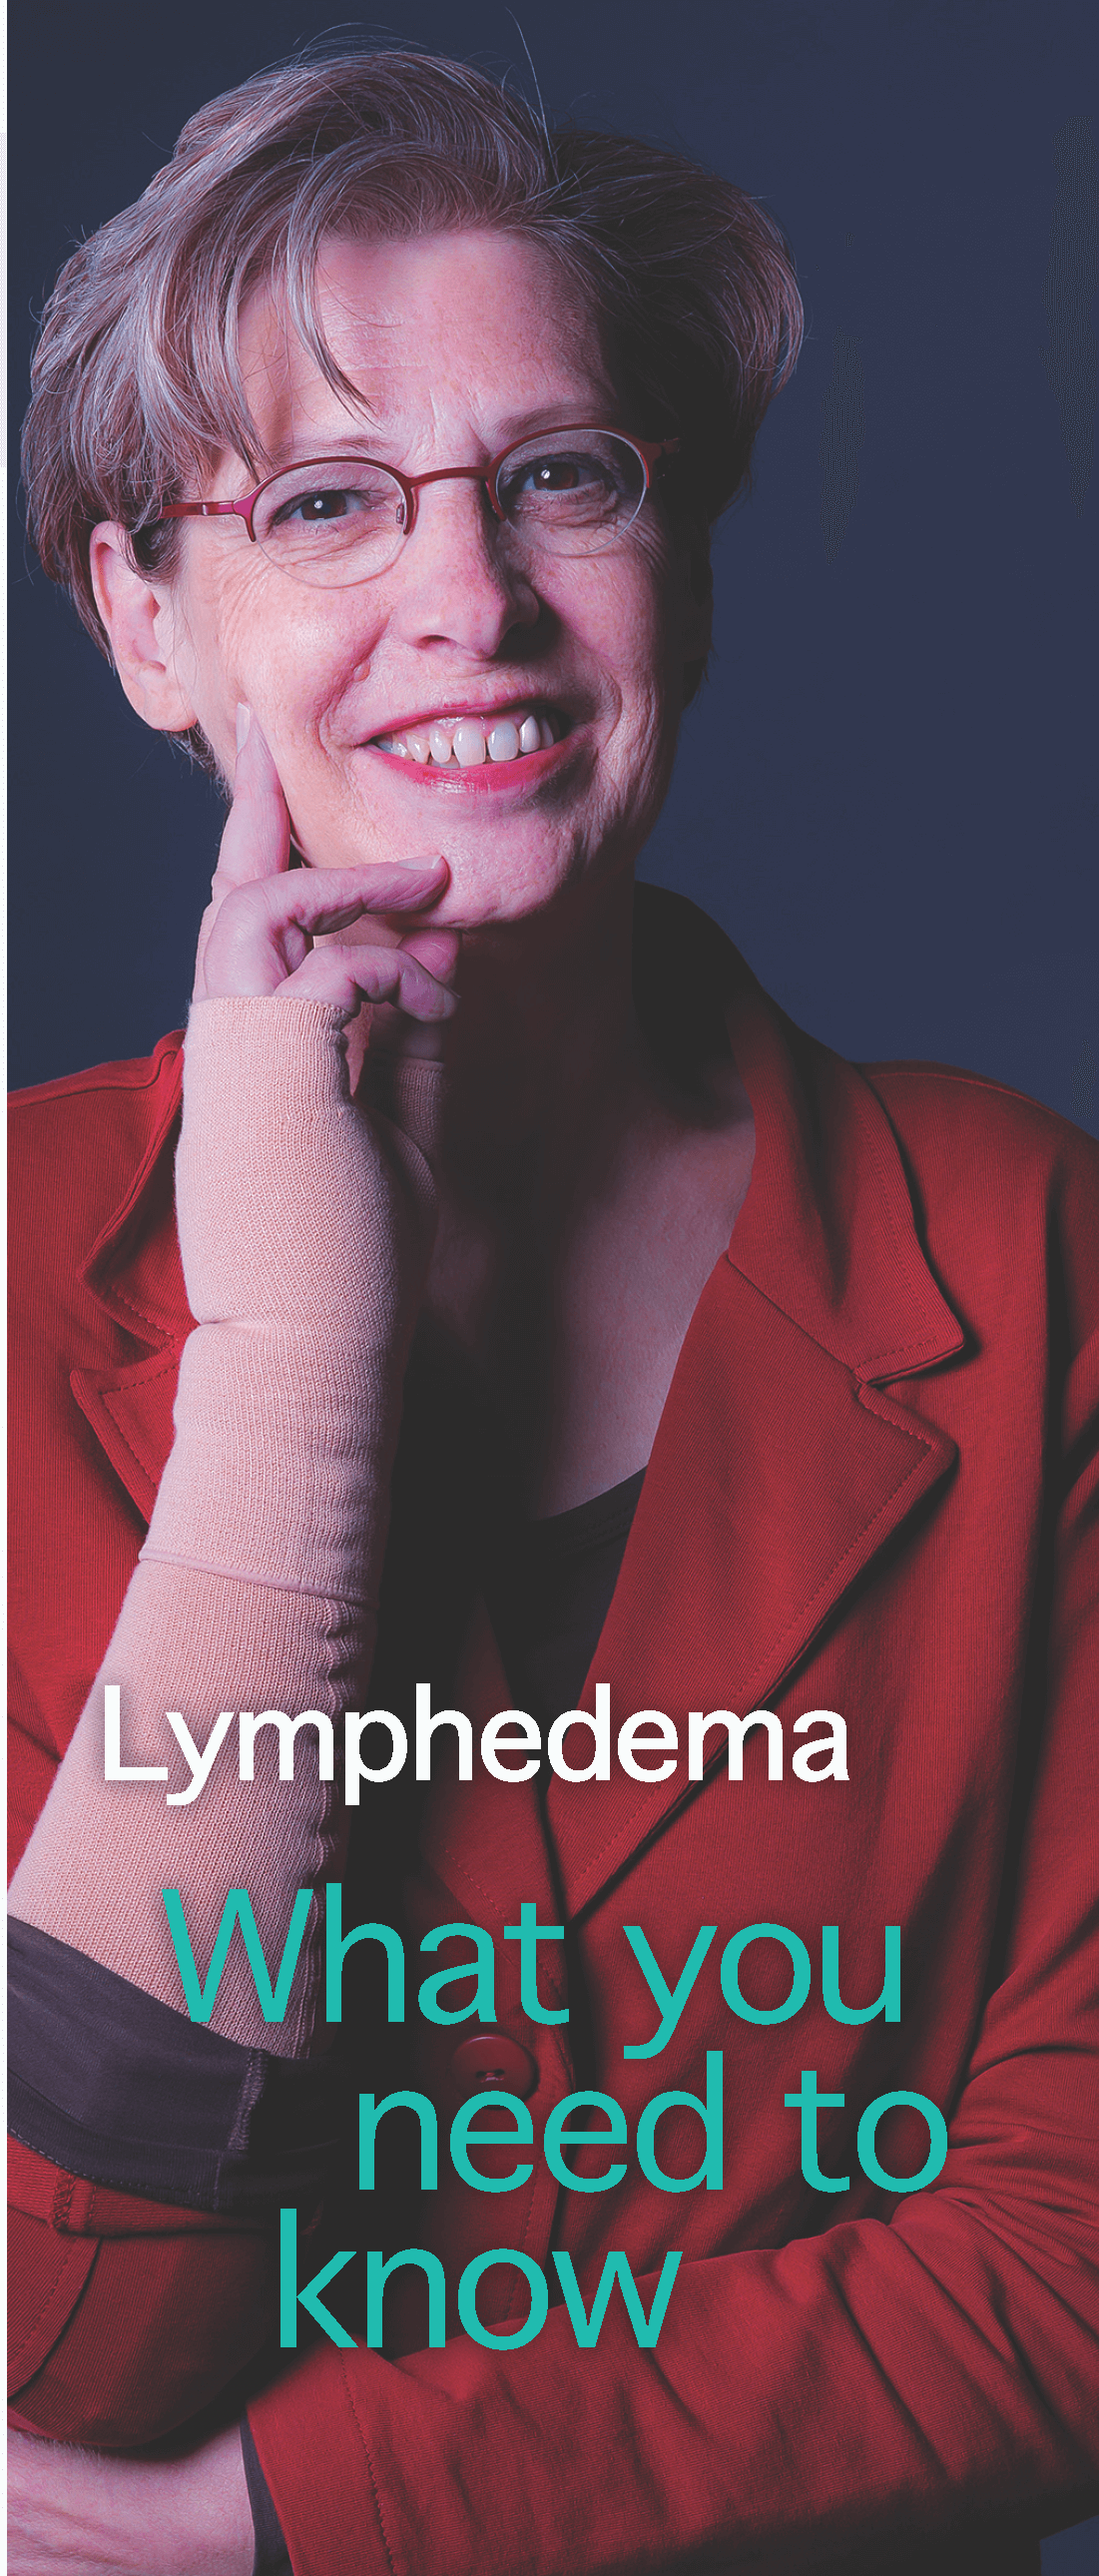 Patient Pamphlet Cover